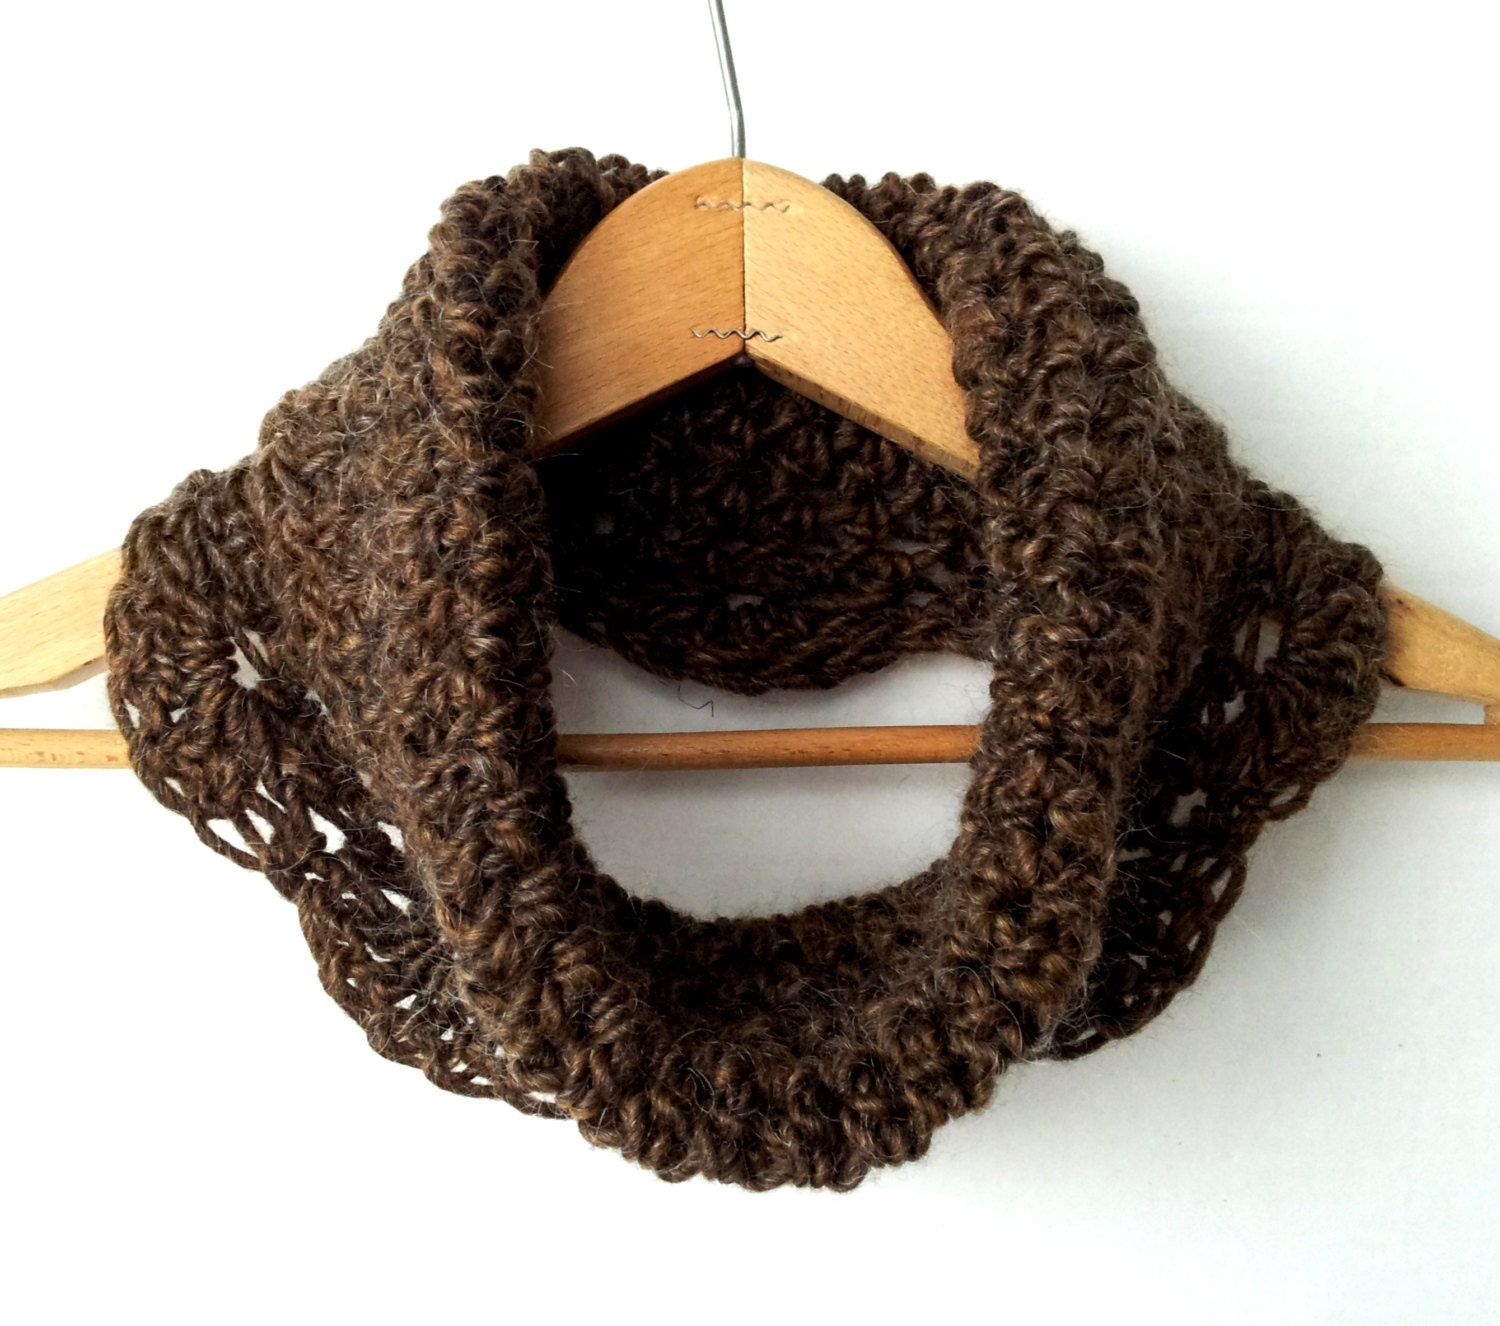 Chic & Sophisticated Sable Brown Crochet Cowl,  Trendy Tweed, 100% Wool, Neck Warmer, More Color Options - NorthernCottageGifts